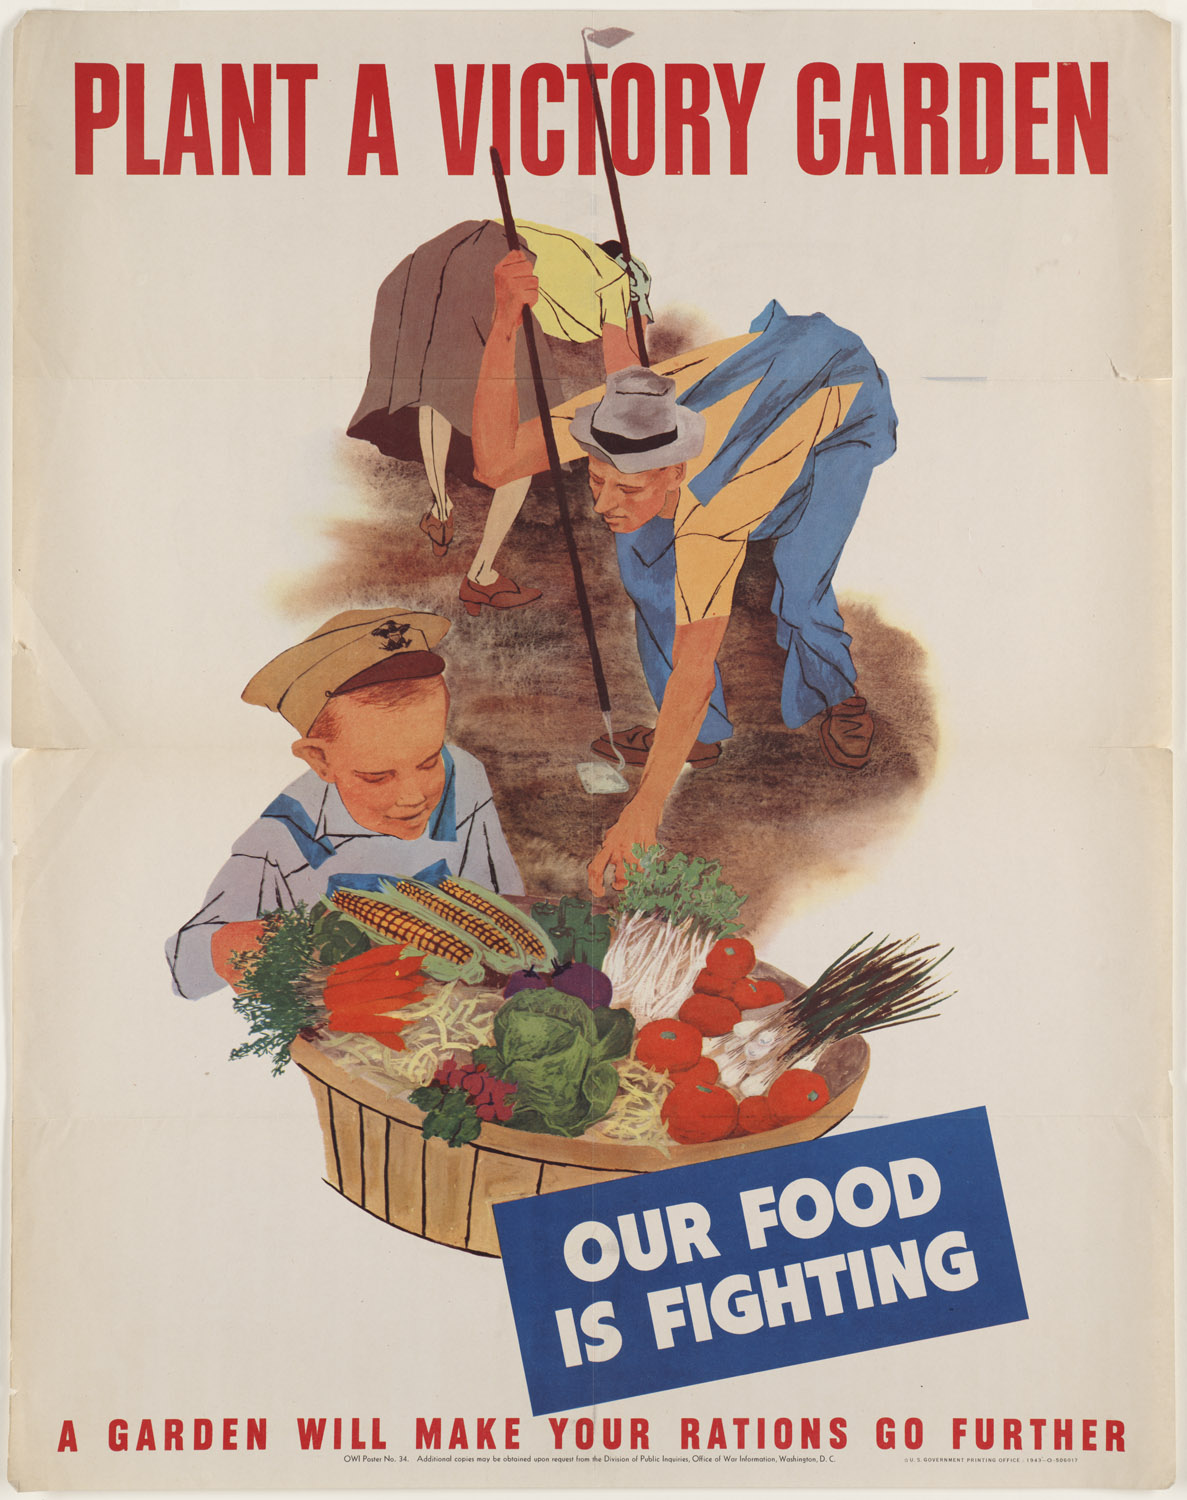 Fighting clipart war victory. Patriotic garden poster from